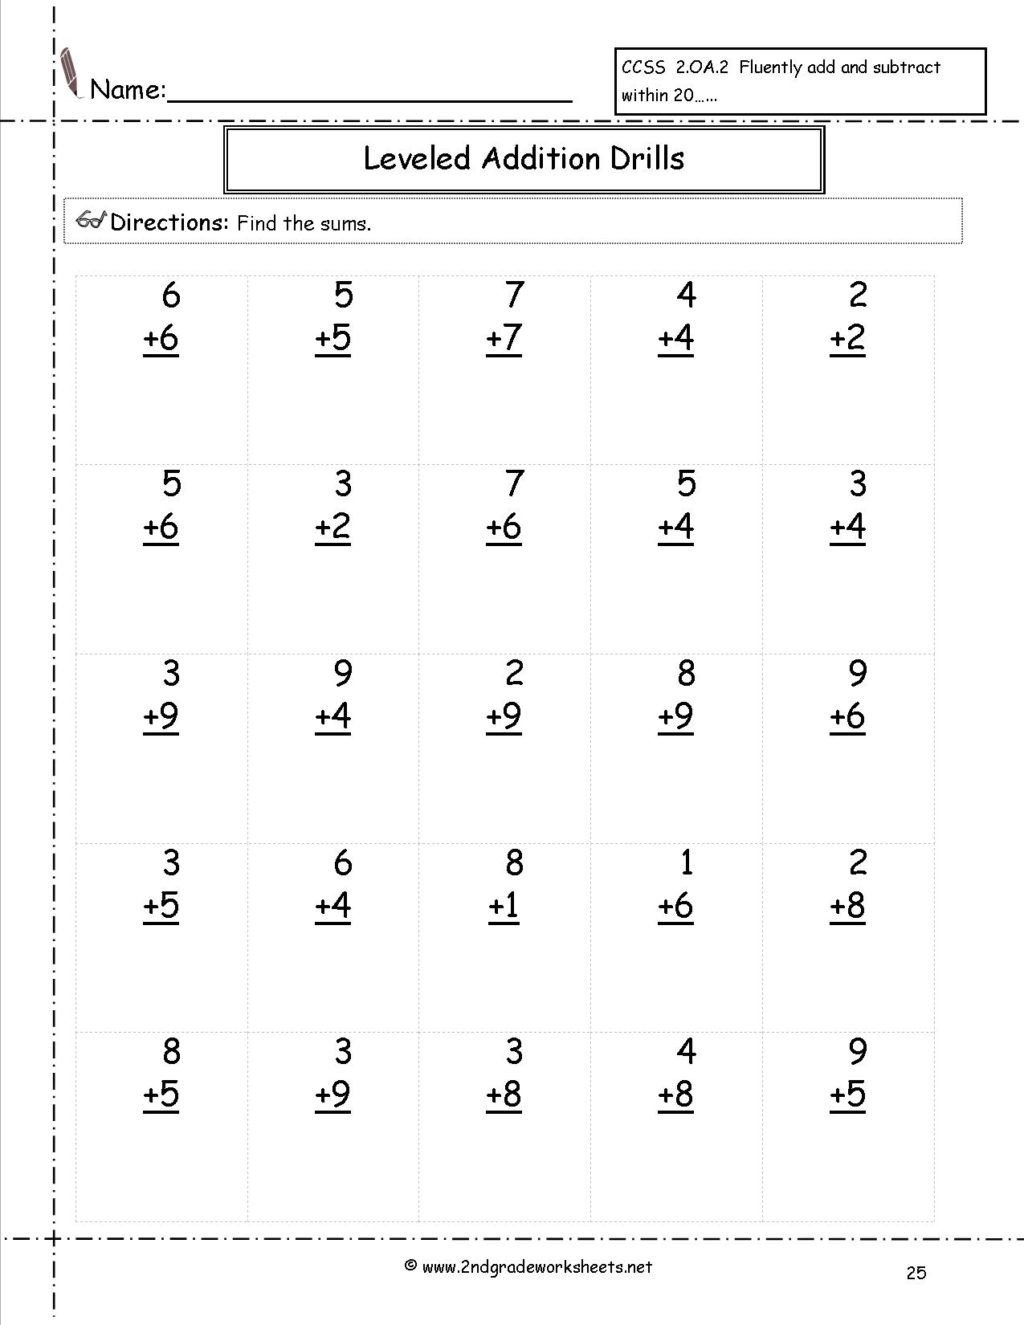 splendind grade math test printable free worksheets and printouts additiondrills25 leveled 3rd timed 1024x1325